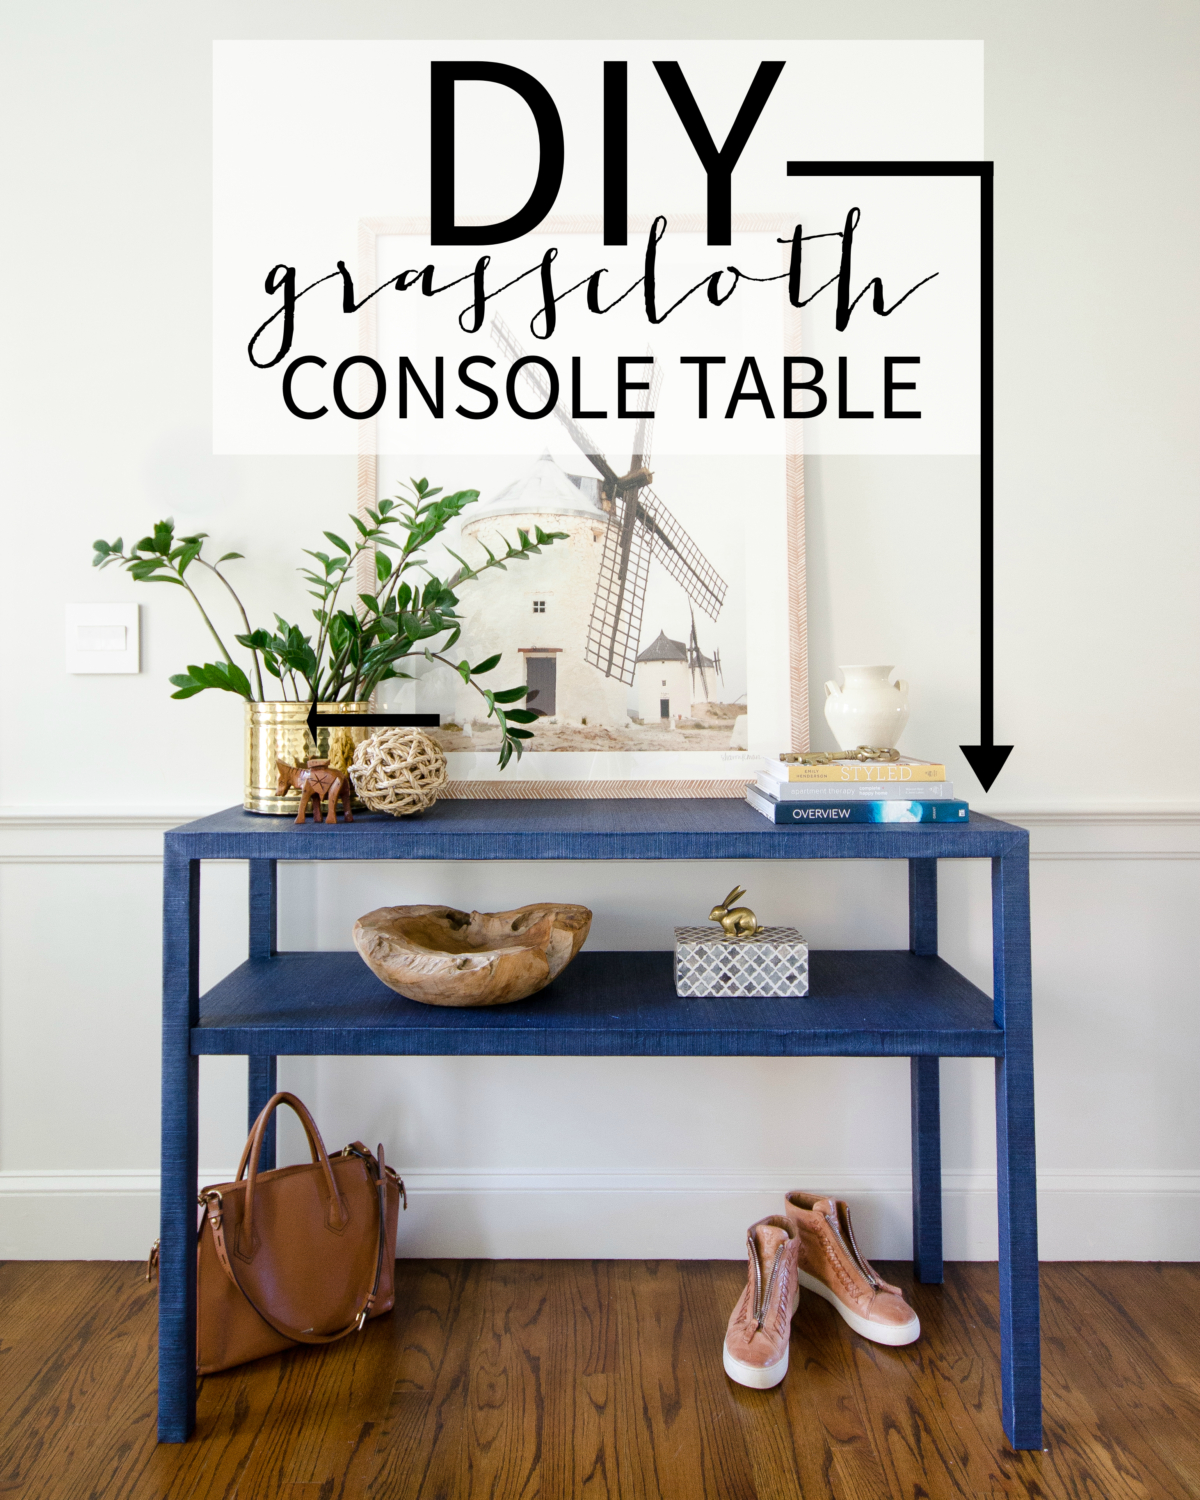 DIY grasscloth table - full tutorial for how to build this grasscloth console table yourself. Perfect for entryway, sideboard, or large nightstand.